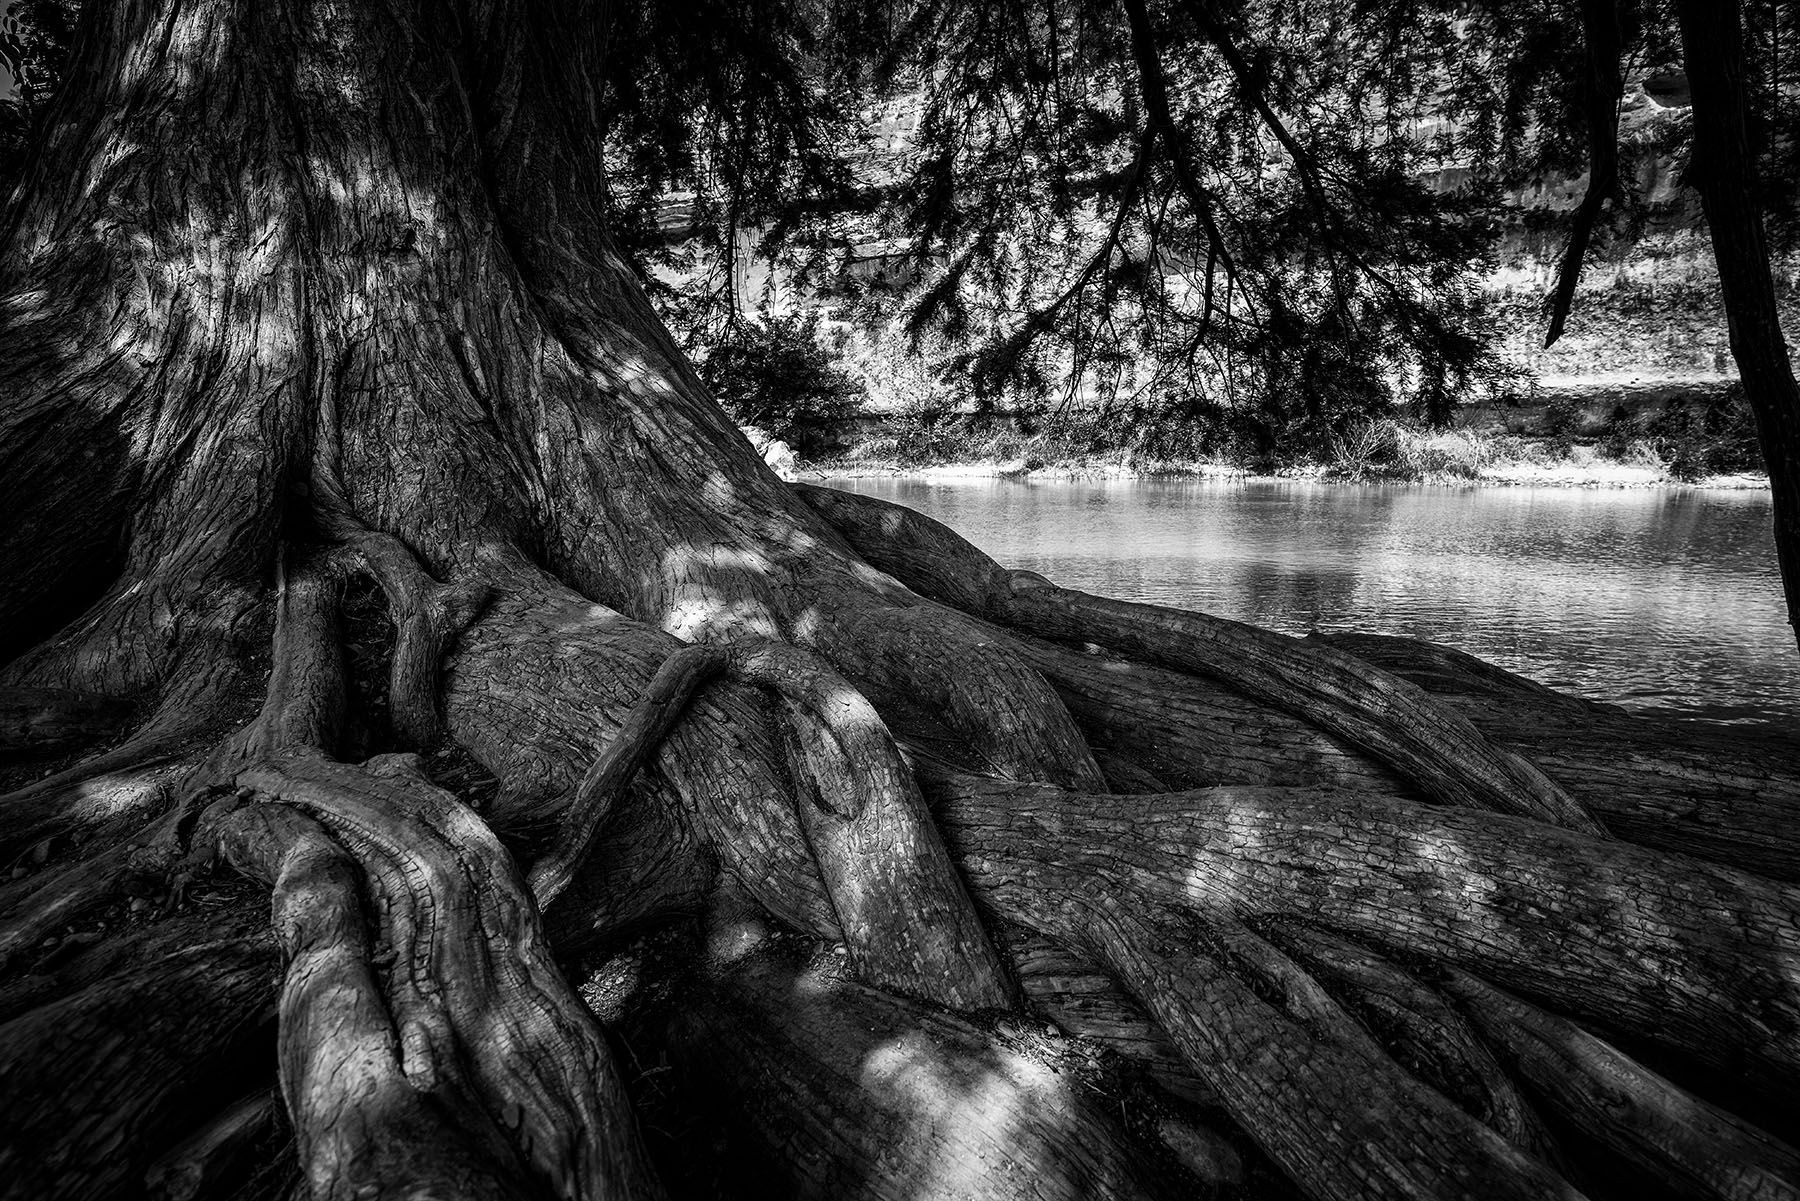 The massive roots of a tree along the banks of the Guadalupe River at Texas' Guadalupe River State Park.